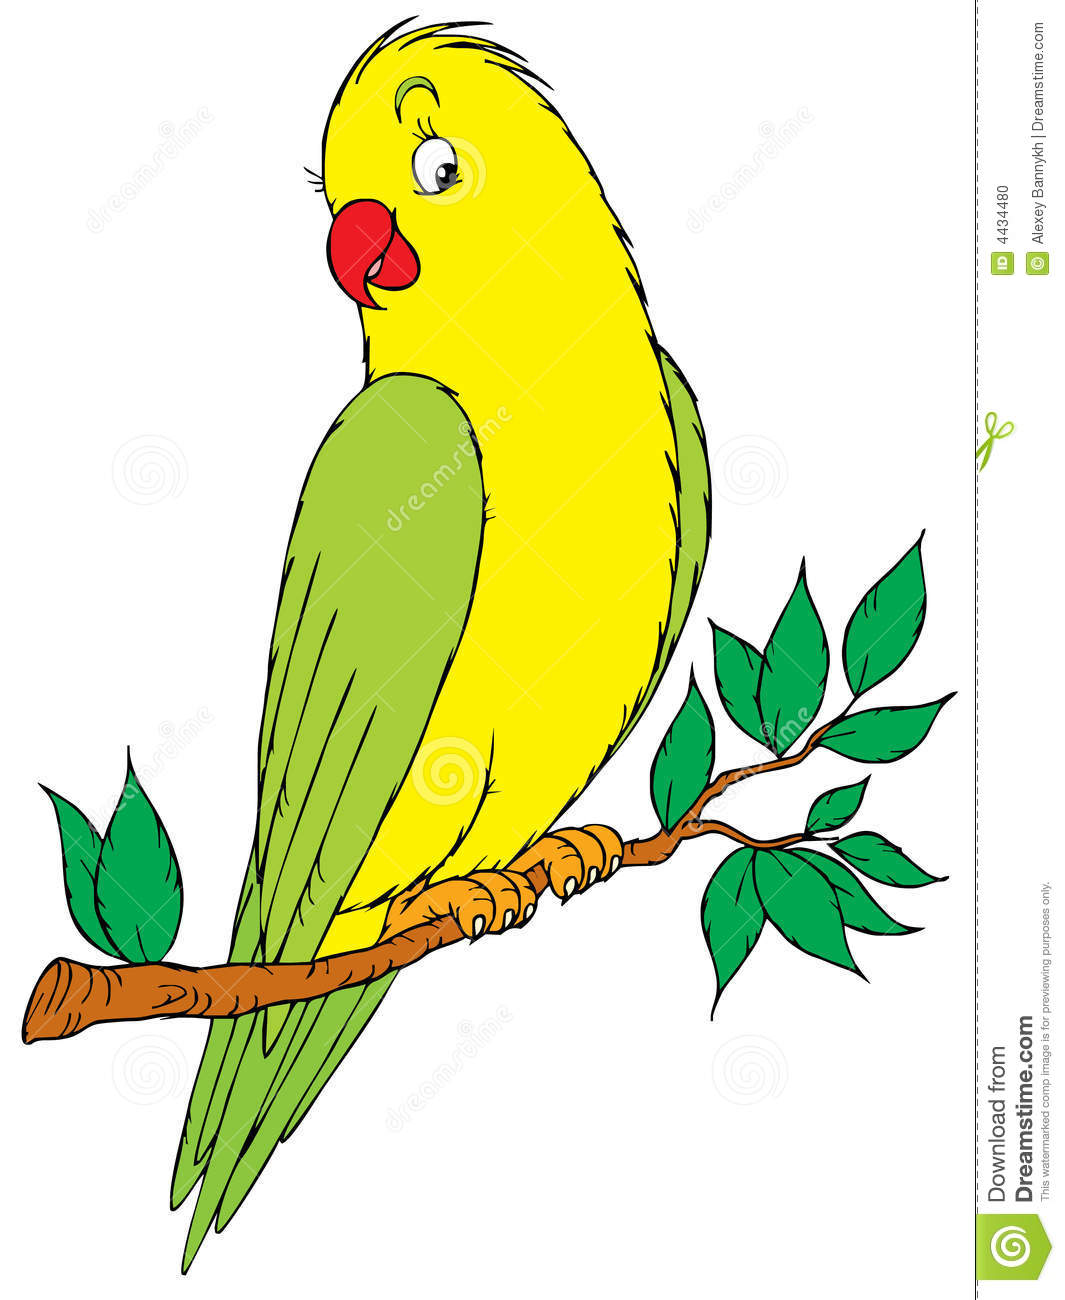 Parrot clipart three green. Station